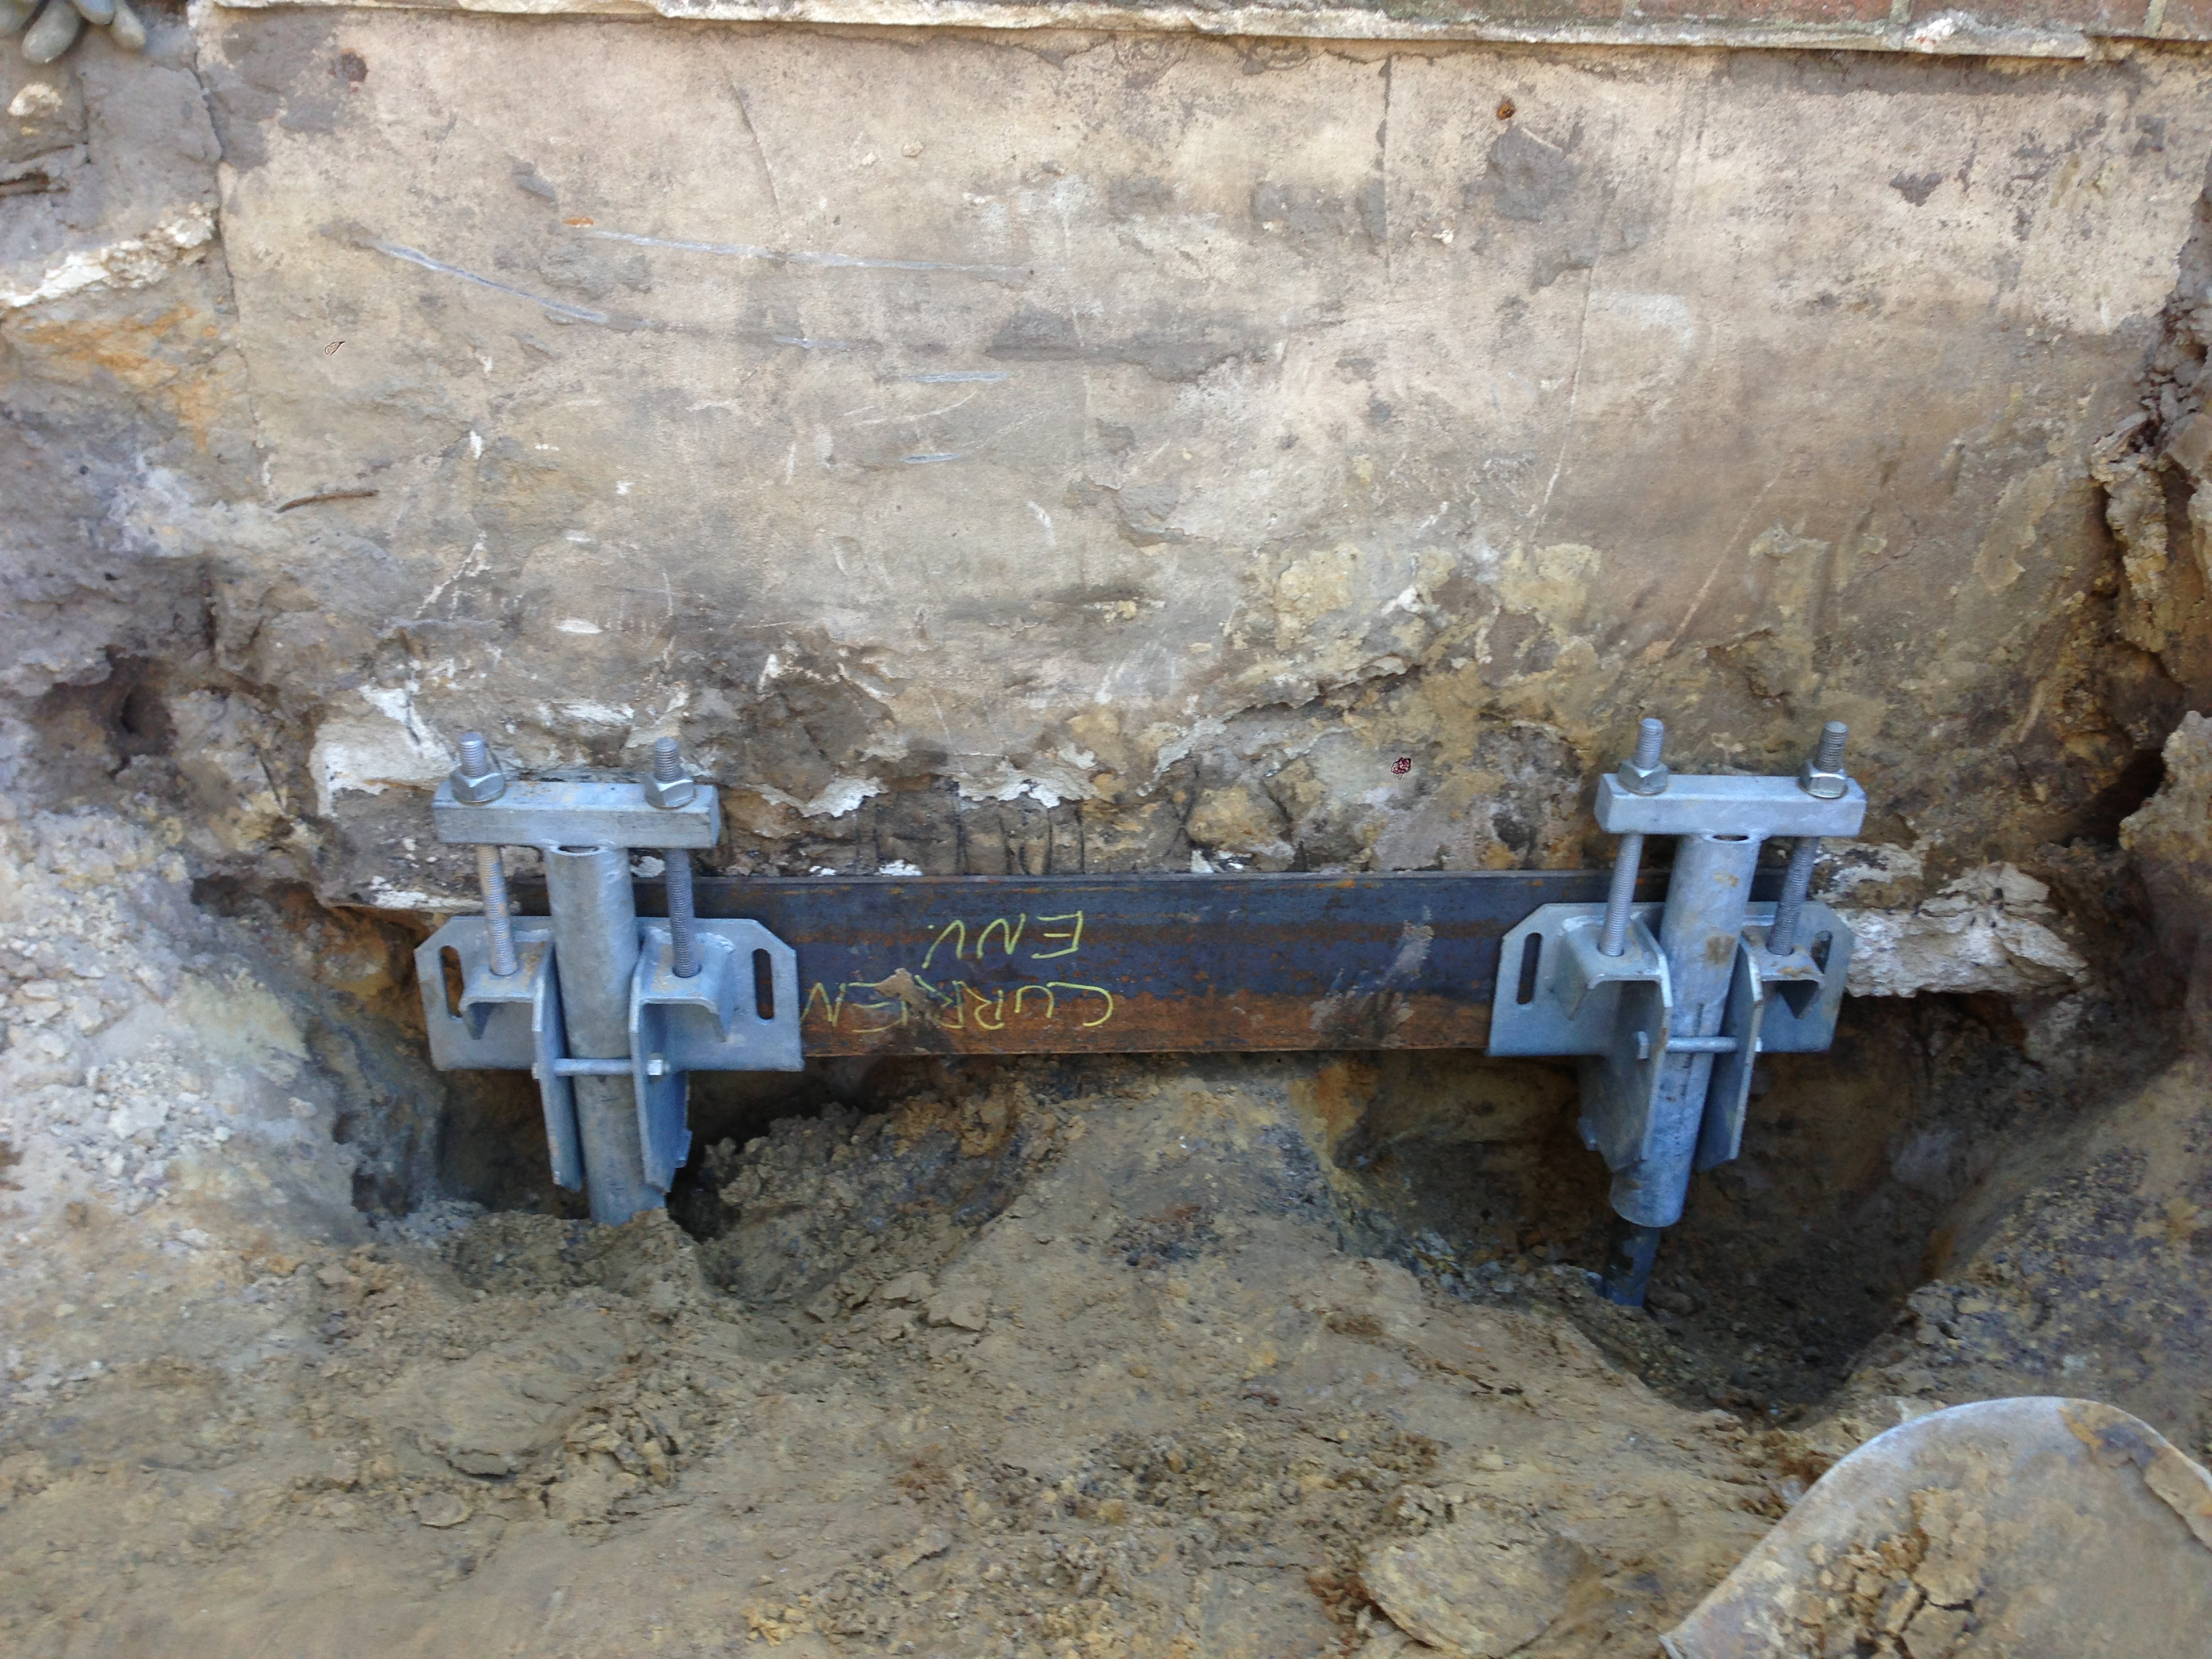 Foundation repair using Helical Piles, Chance Helical Pier